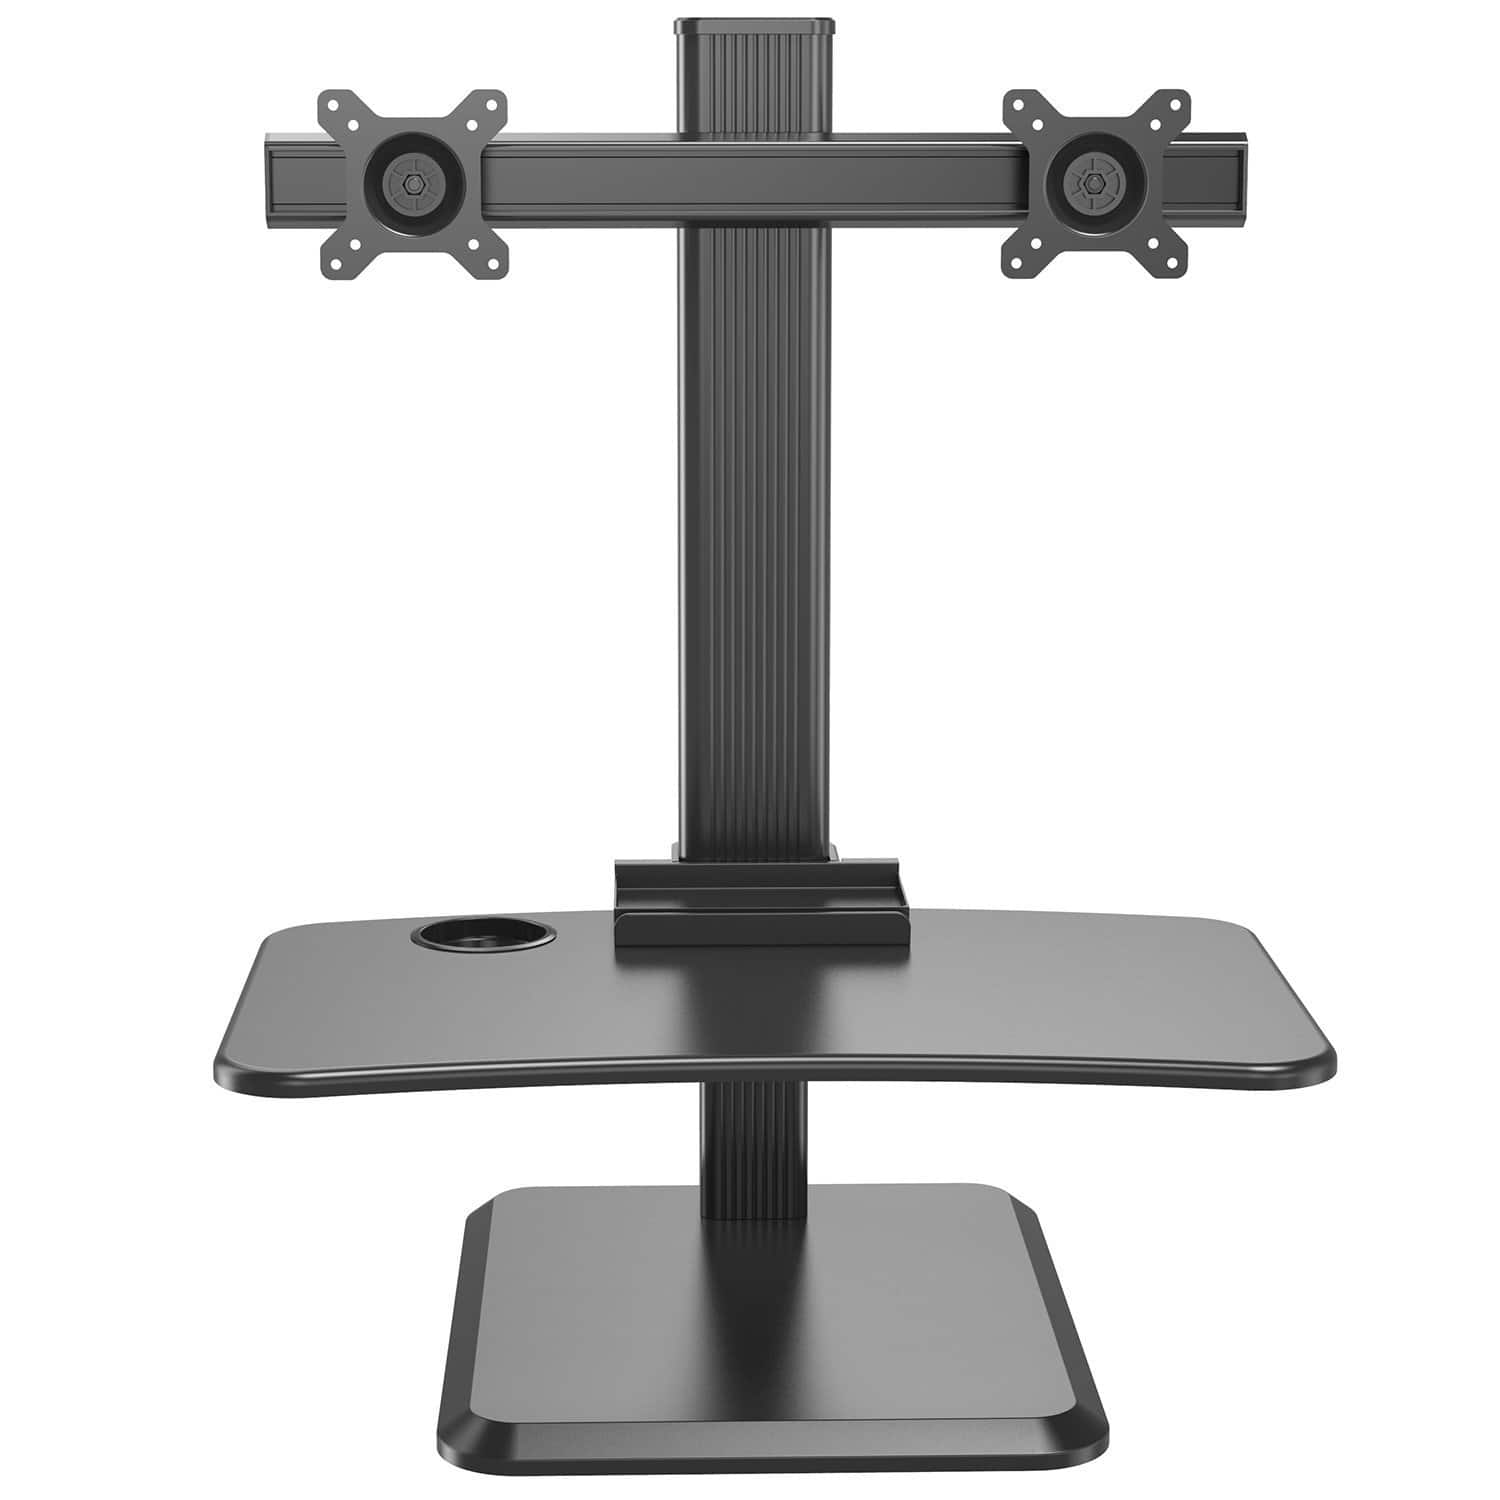 Rosewill Dual Monitor Stand Up Desk Riser Adjustable